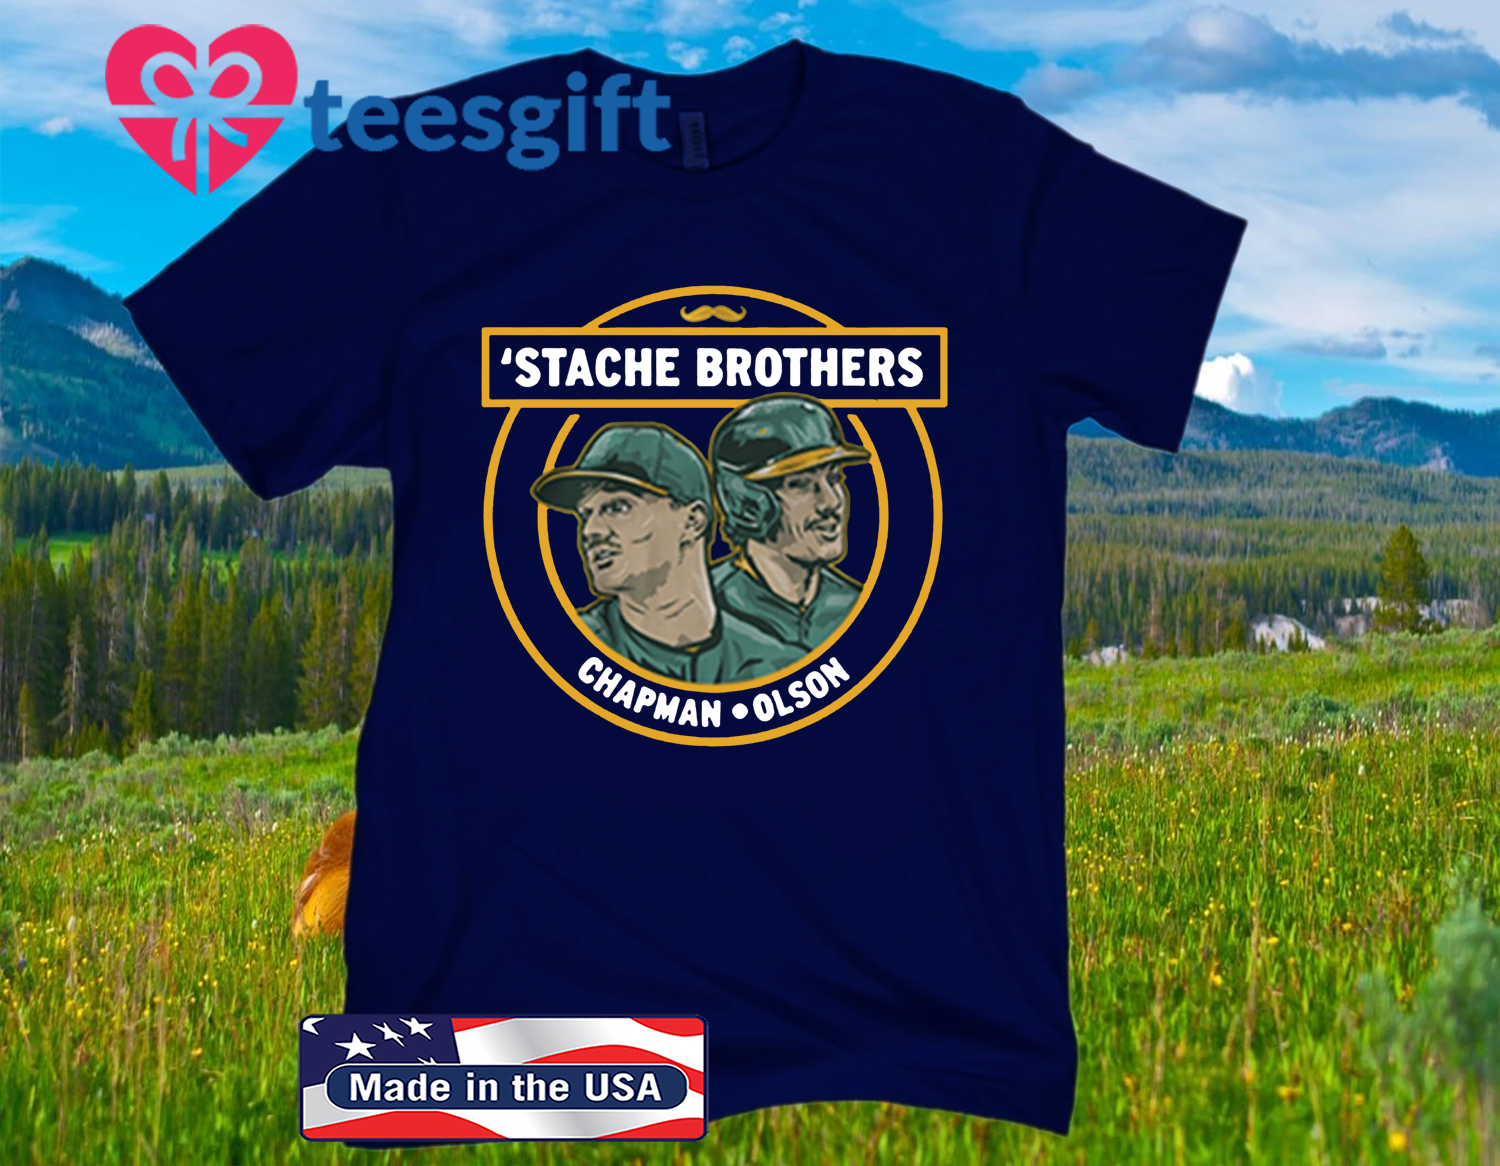 'Stache Brothers T-Shirt, Matt Chapman and Matt Olson